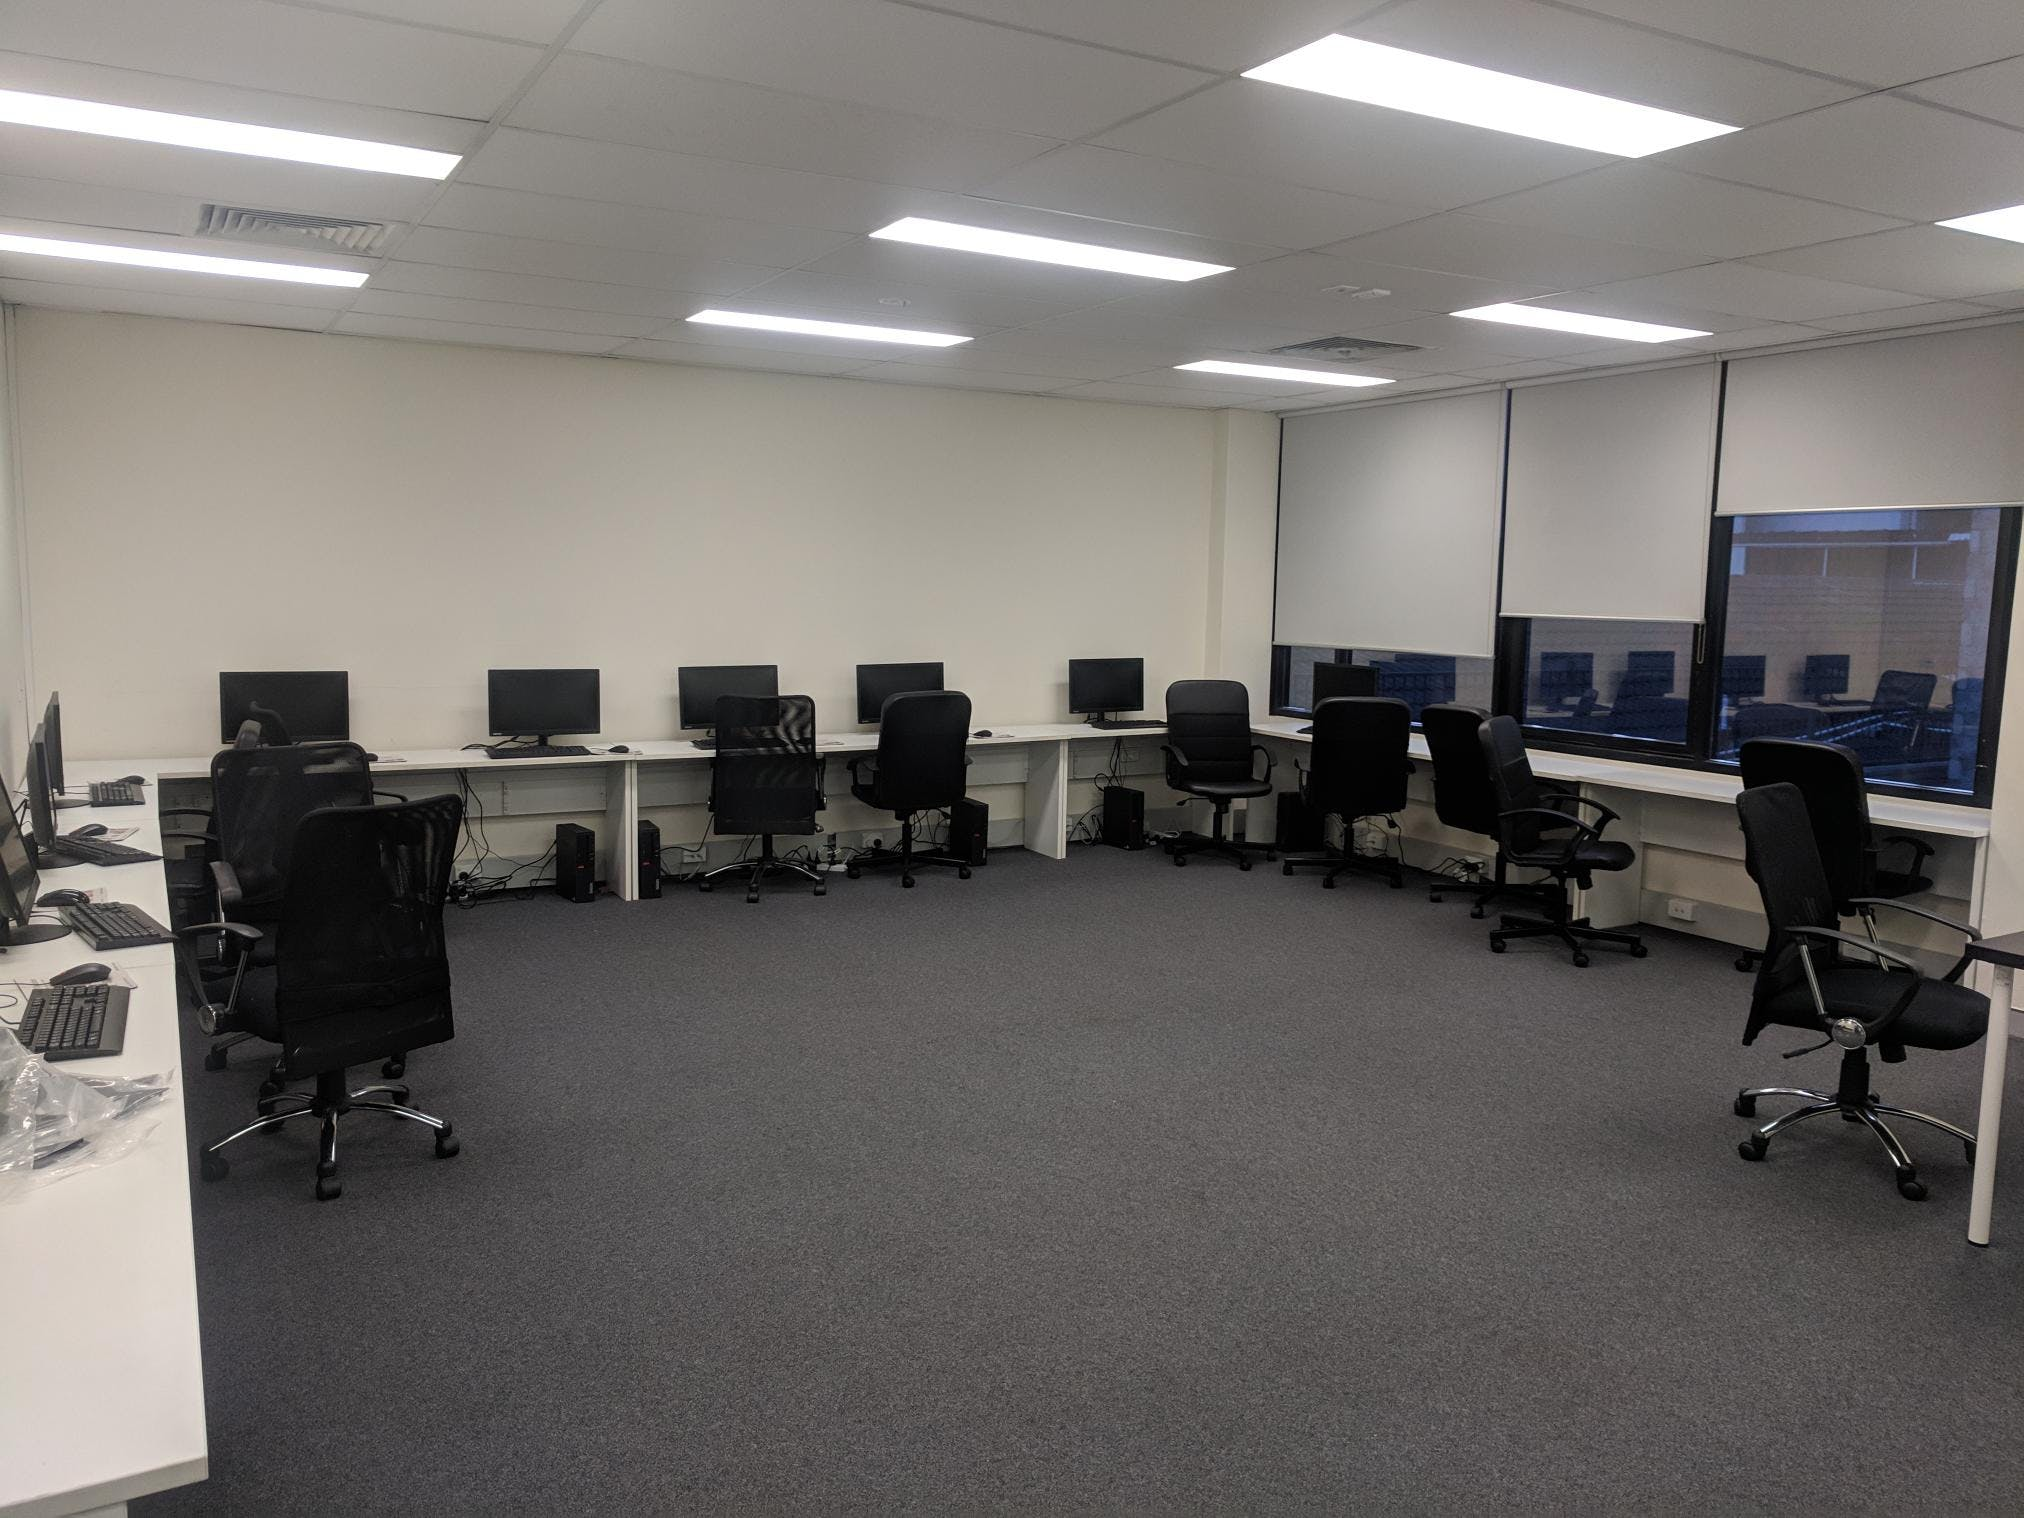 Shared office at Micro Focus Group, image 1